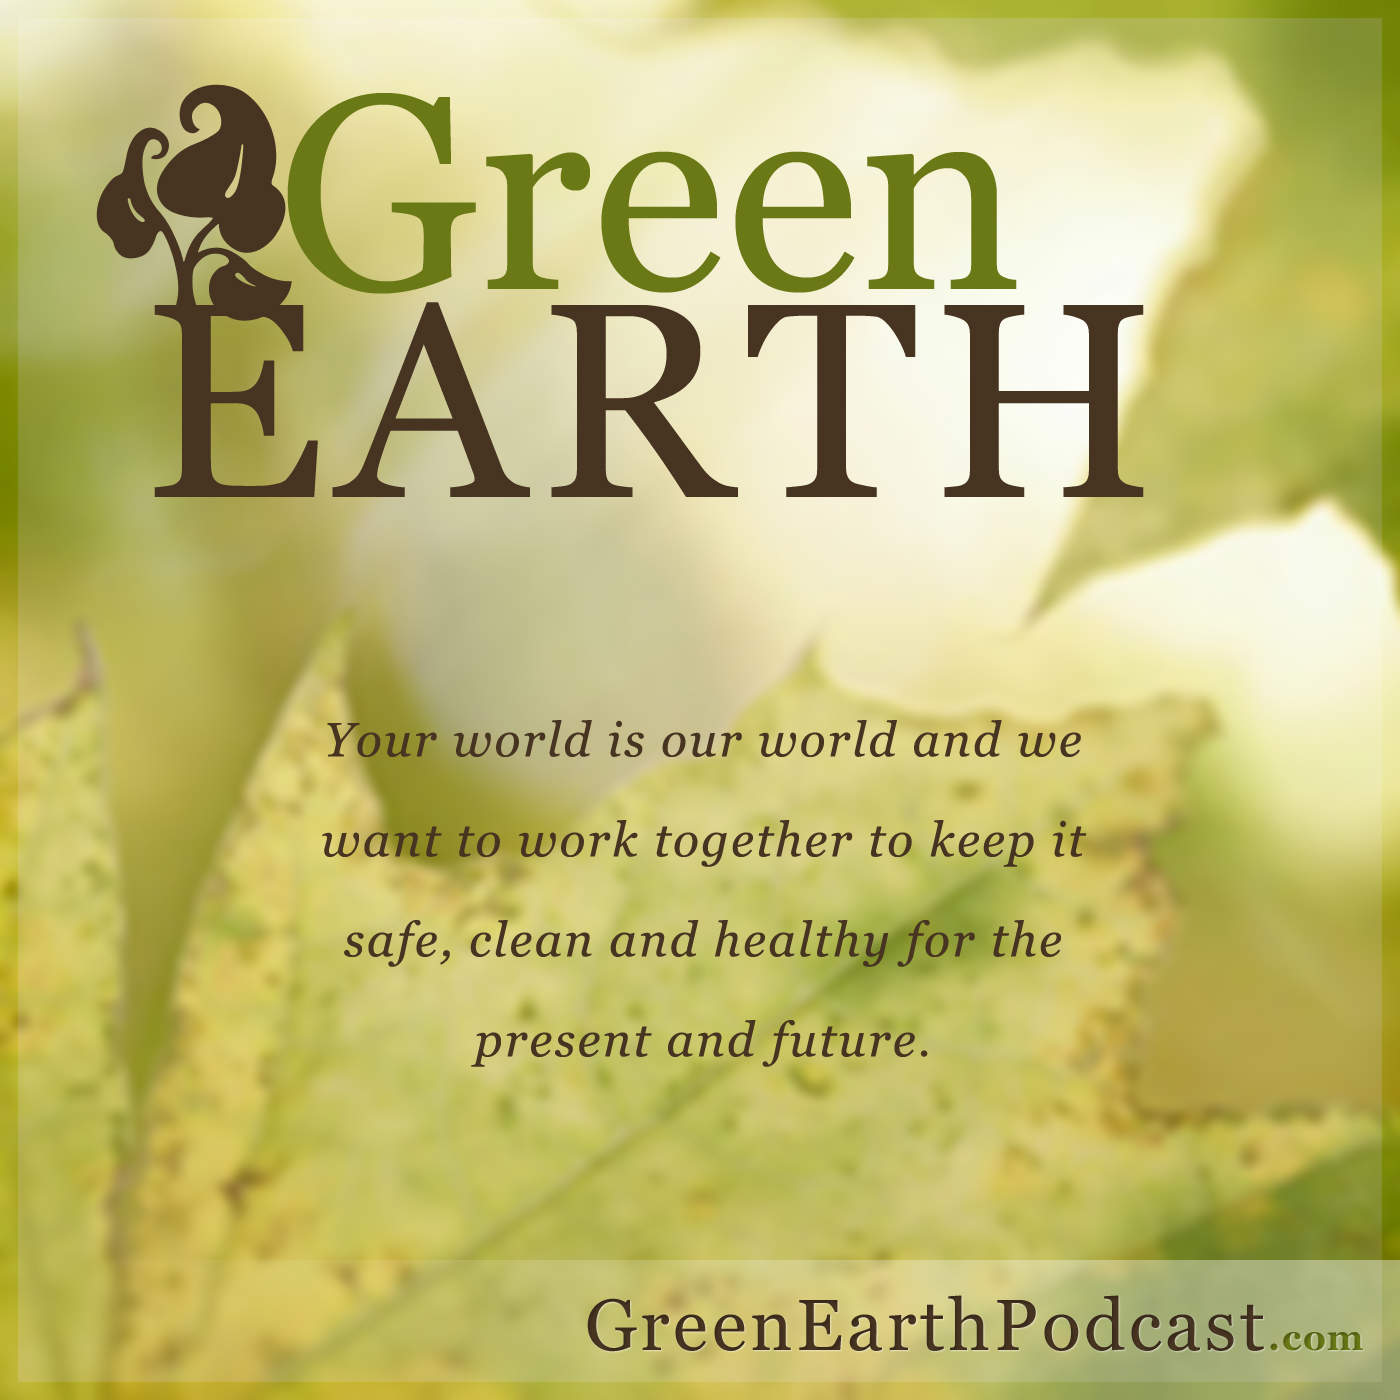 Green Earth Podcast